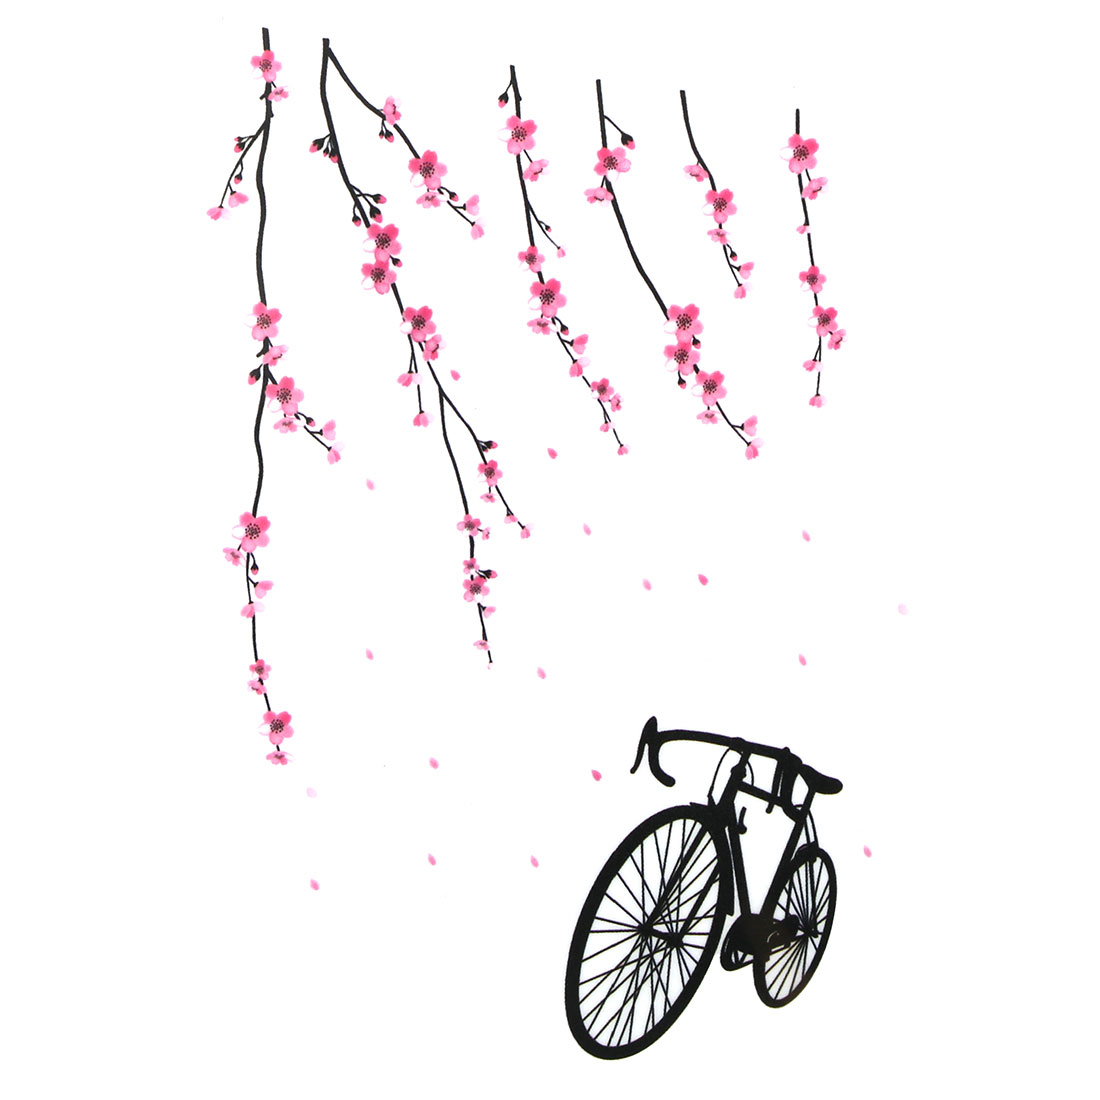 Bedroom Peach Blossom Bike Pattern Removable Wall Sticker Decal Mural